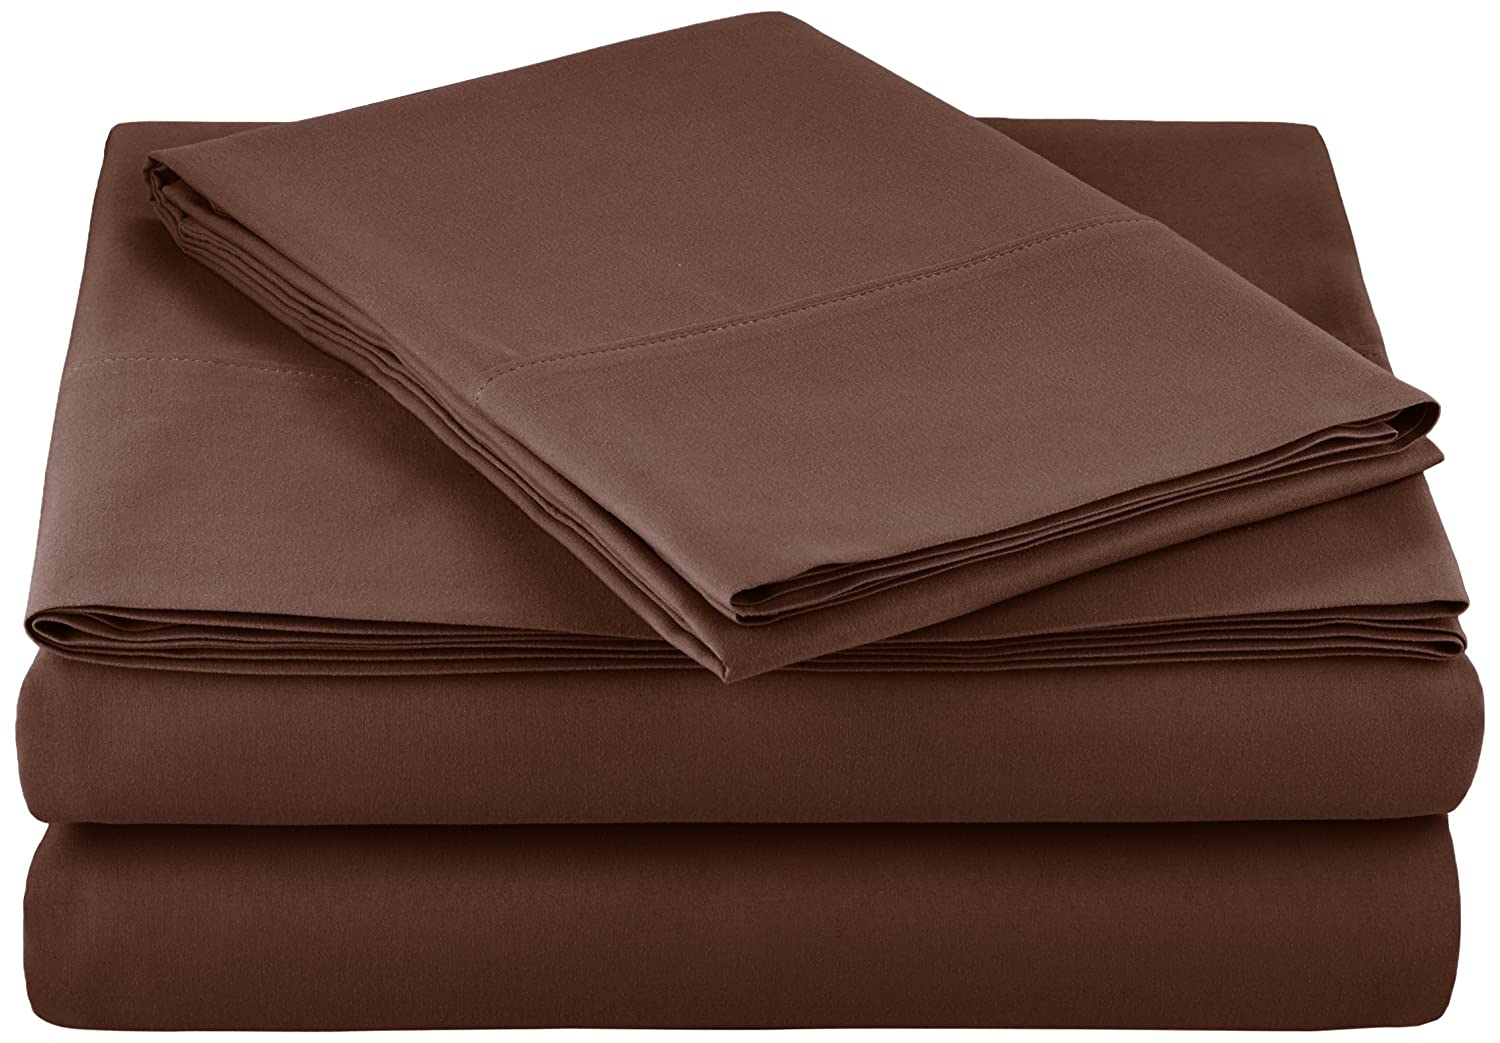 AmazonBasics Microfiber Sheet Set - Twin, Chocolate